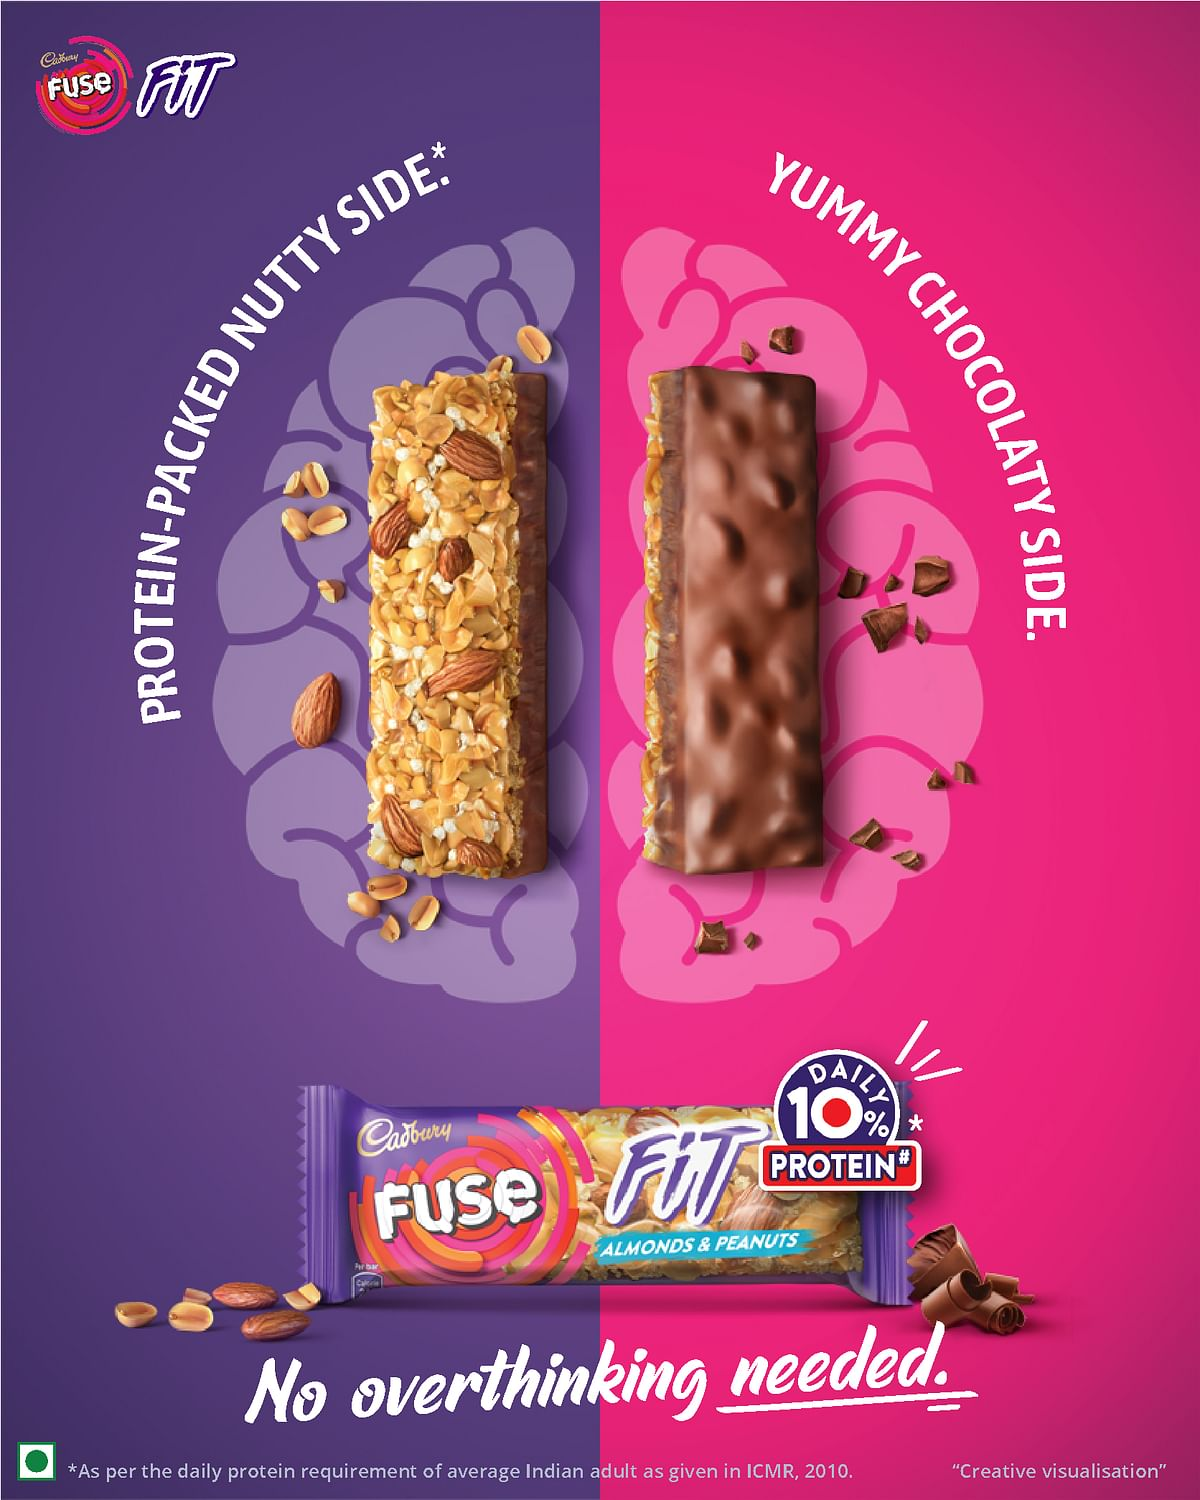 Mondelez forays into snacking bar category with launch of Cadbury Fuse Fit